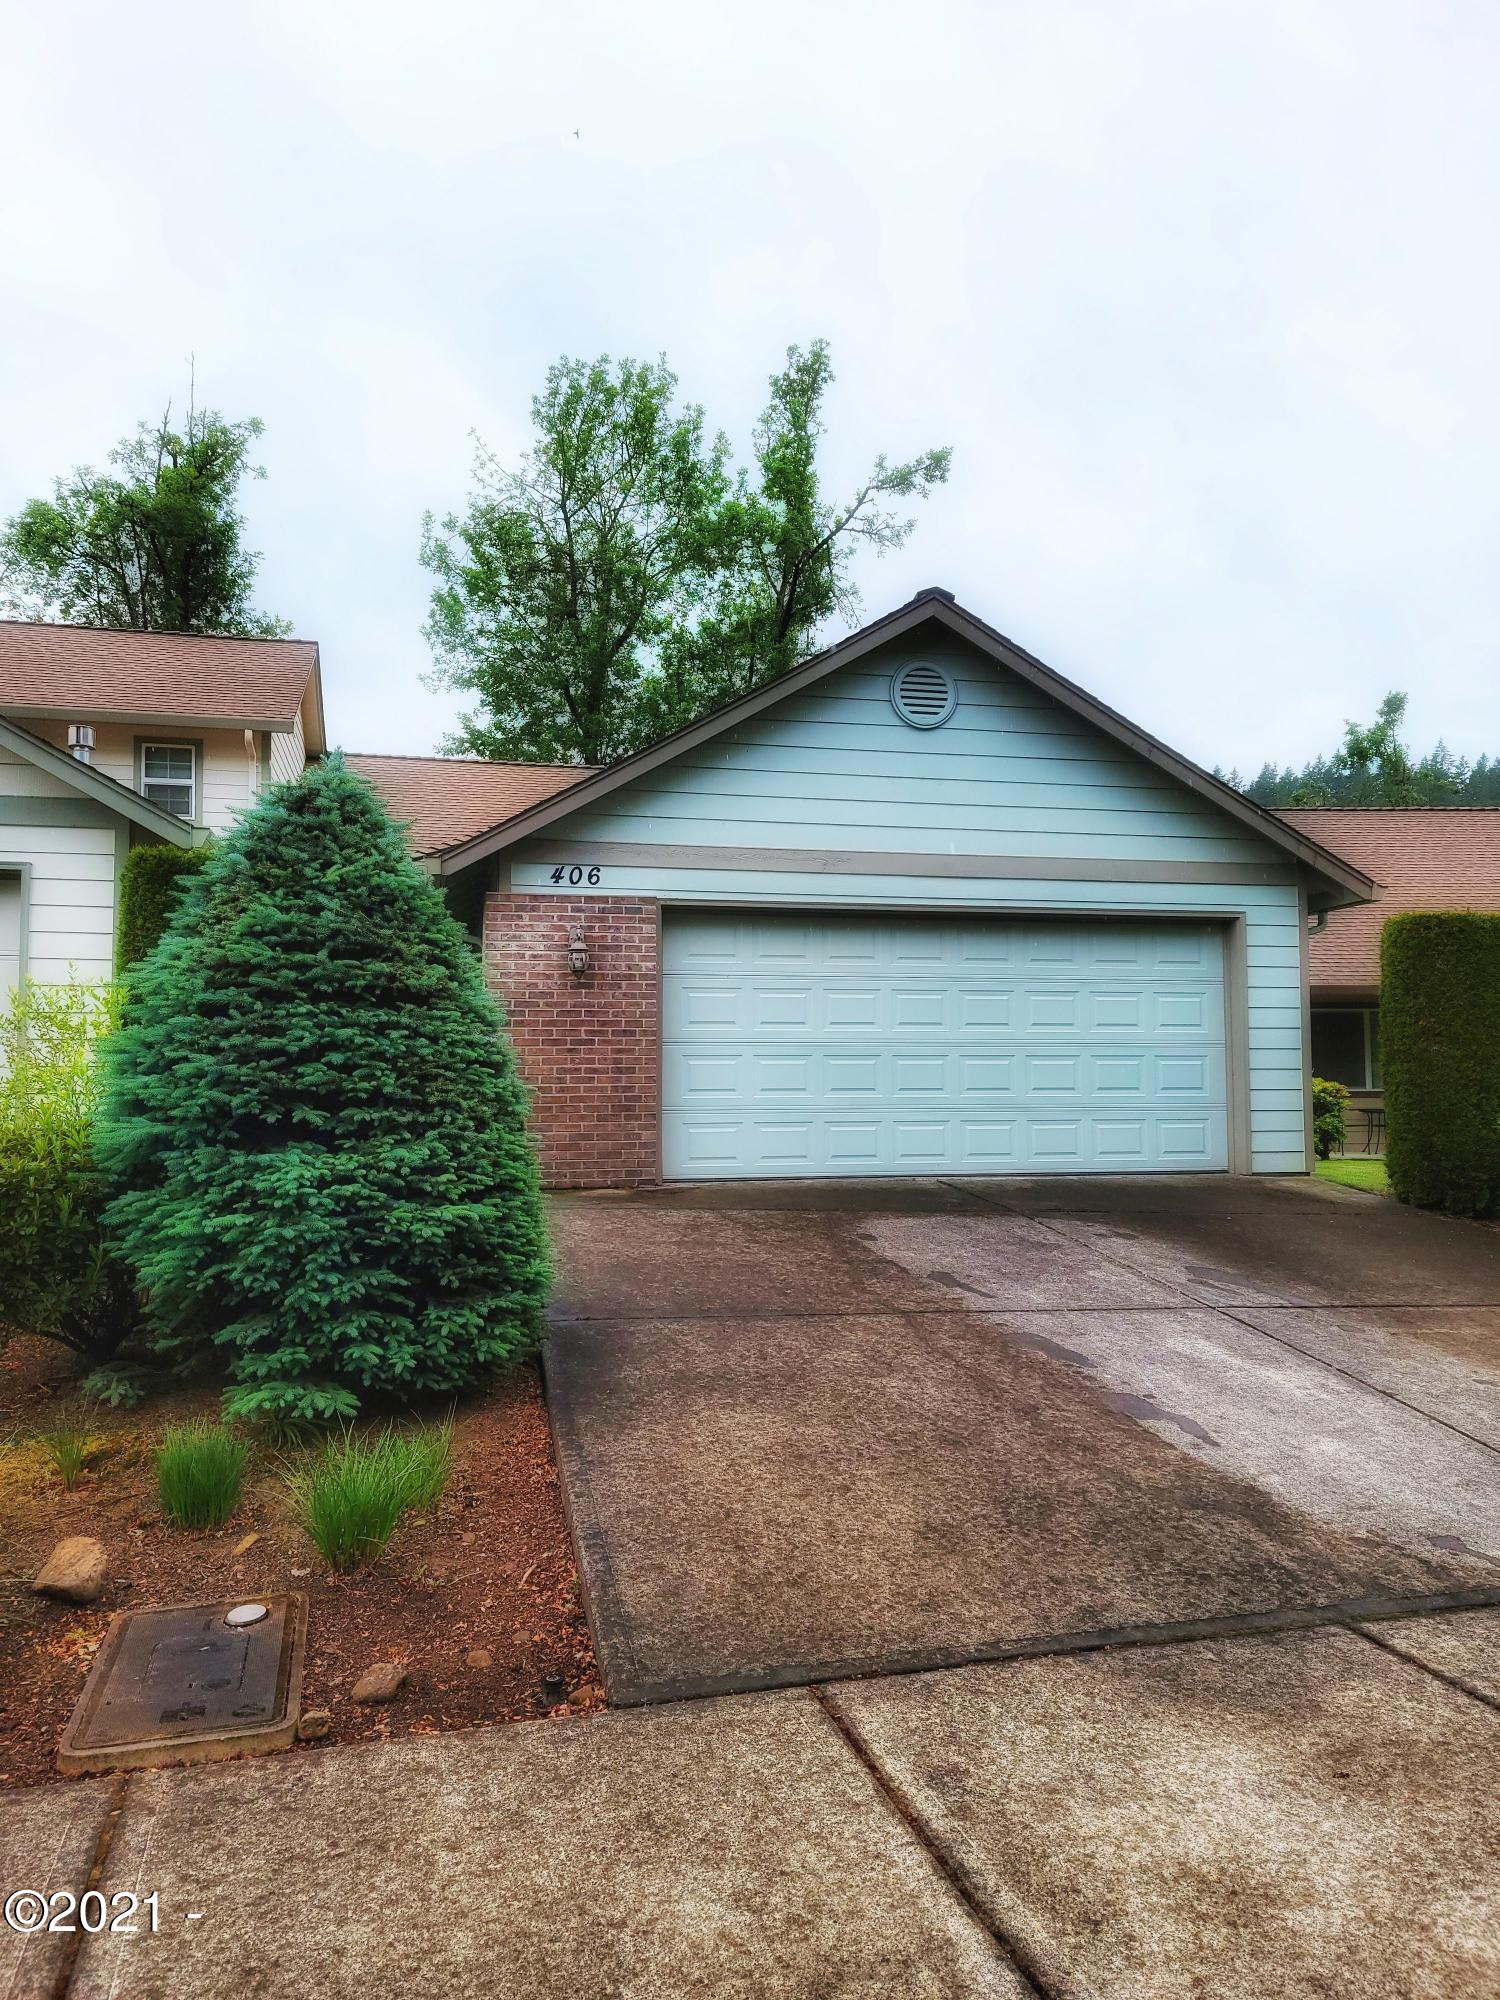 406 Walnut Way, Silverton, OR 97381 - Front of Home